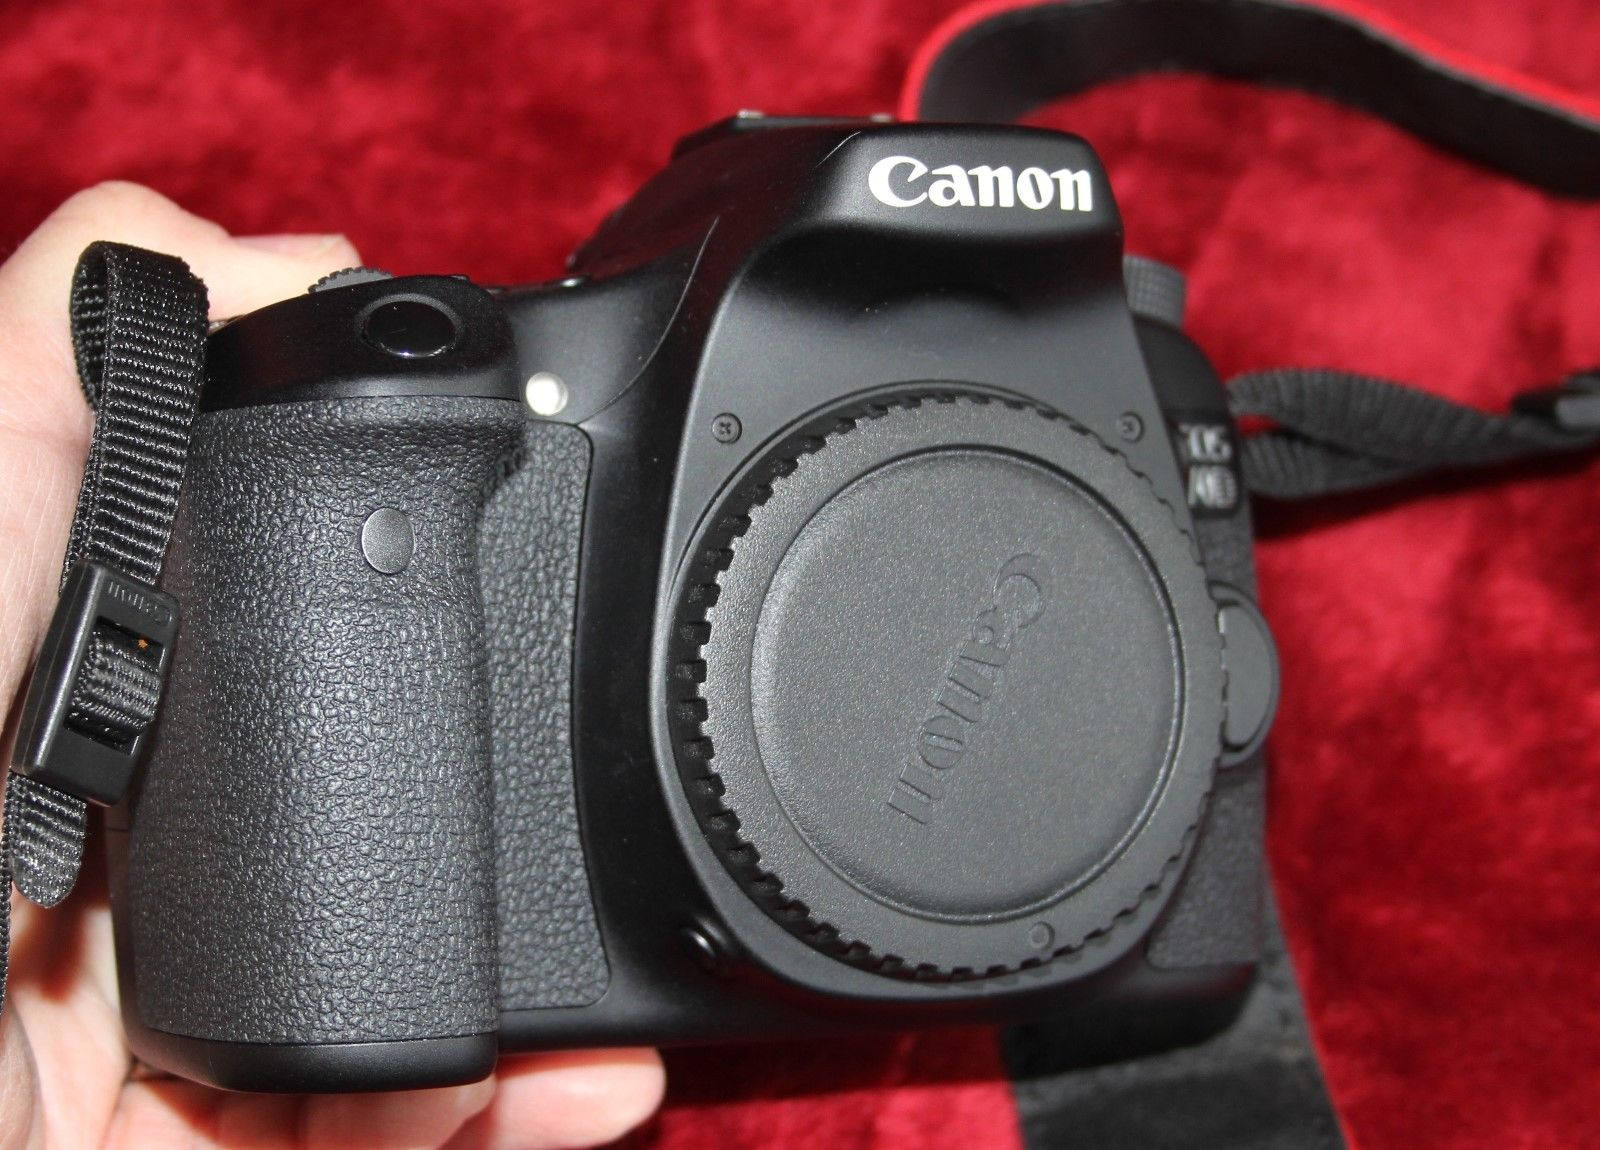 Canon EOS 7D Body 20.2 MP Digital SLR Camera